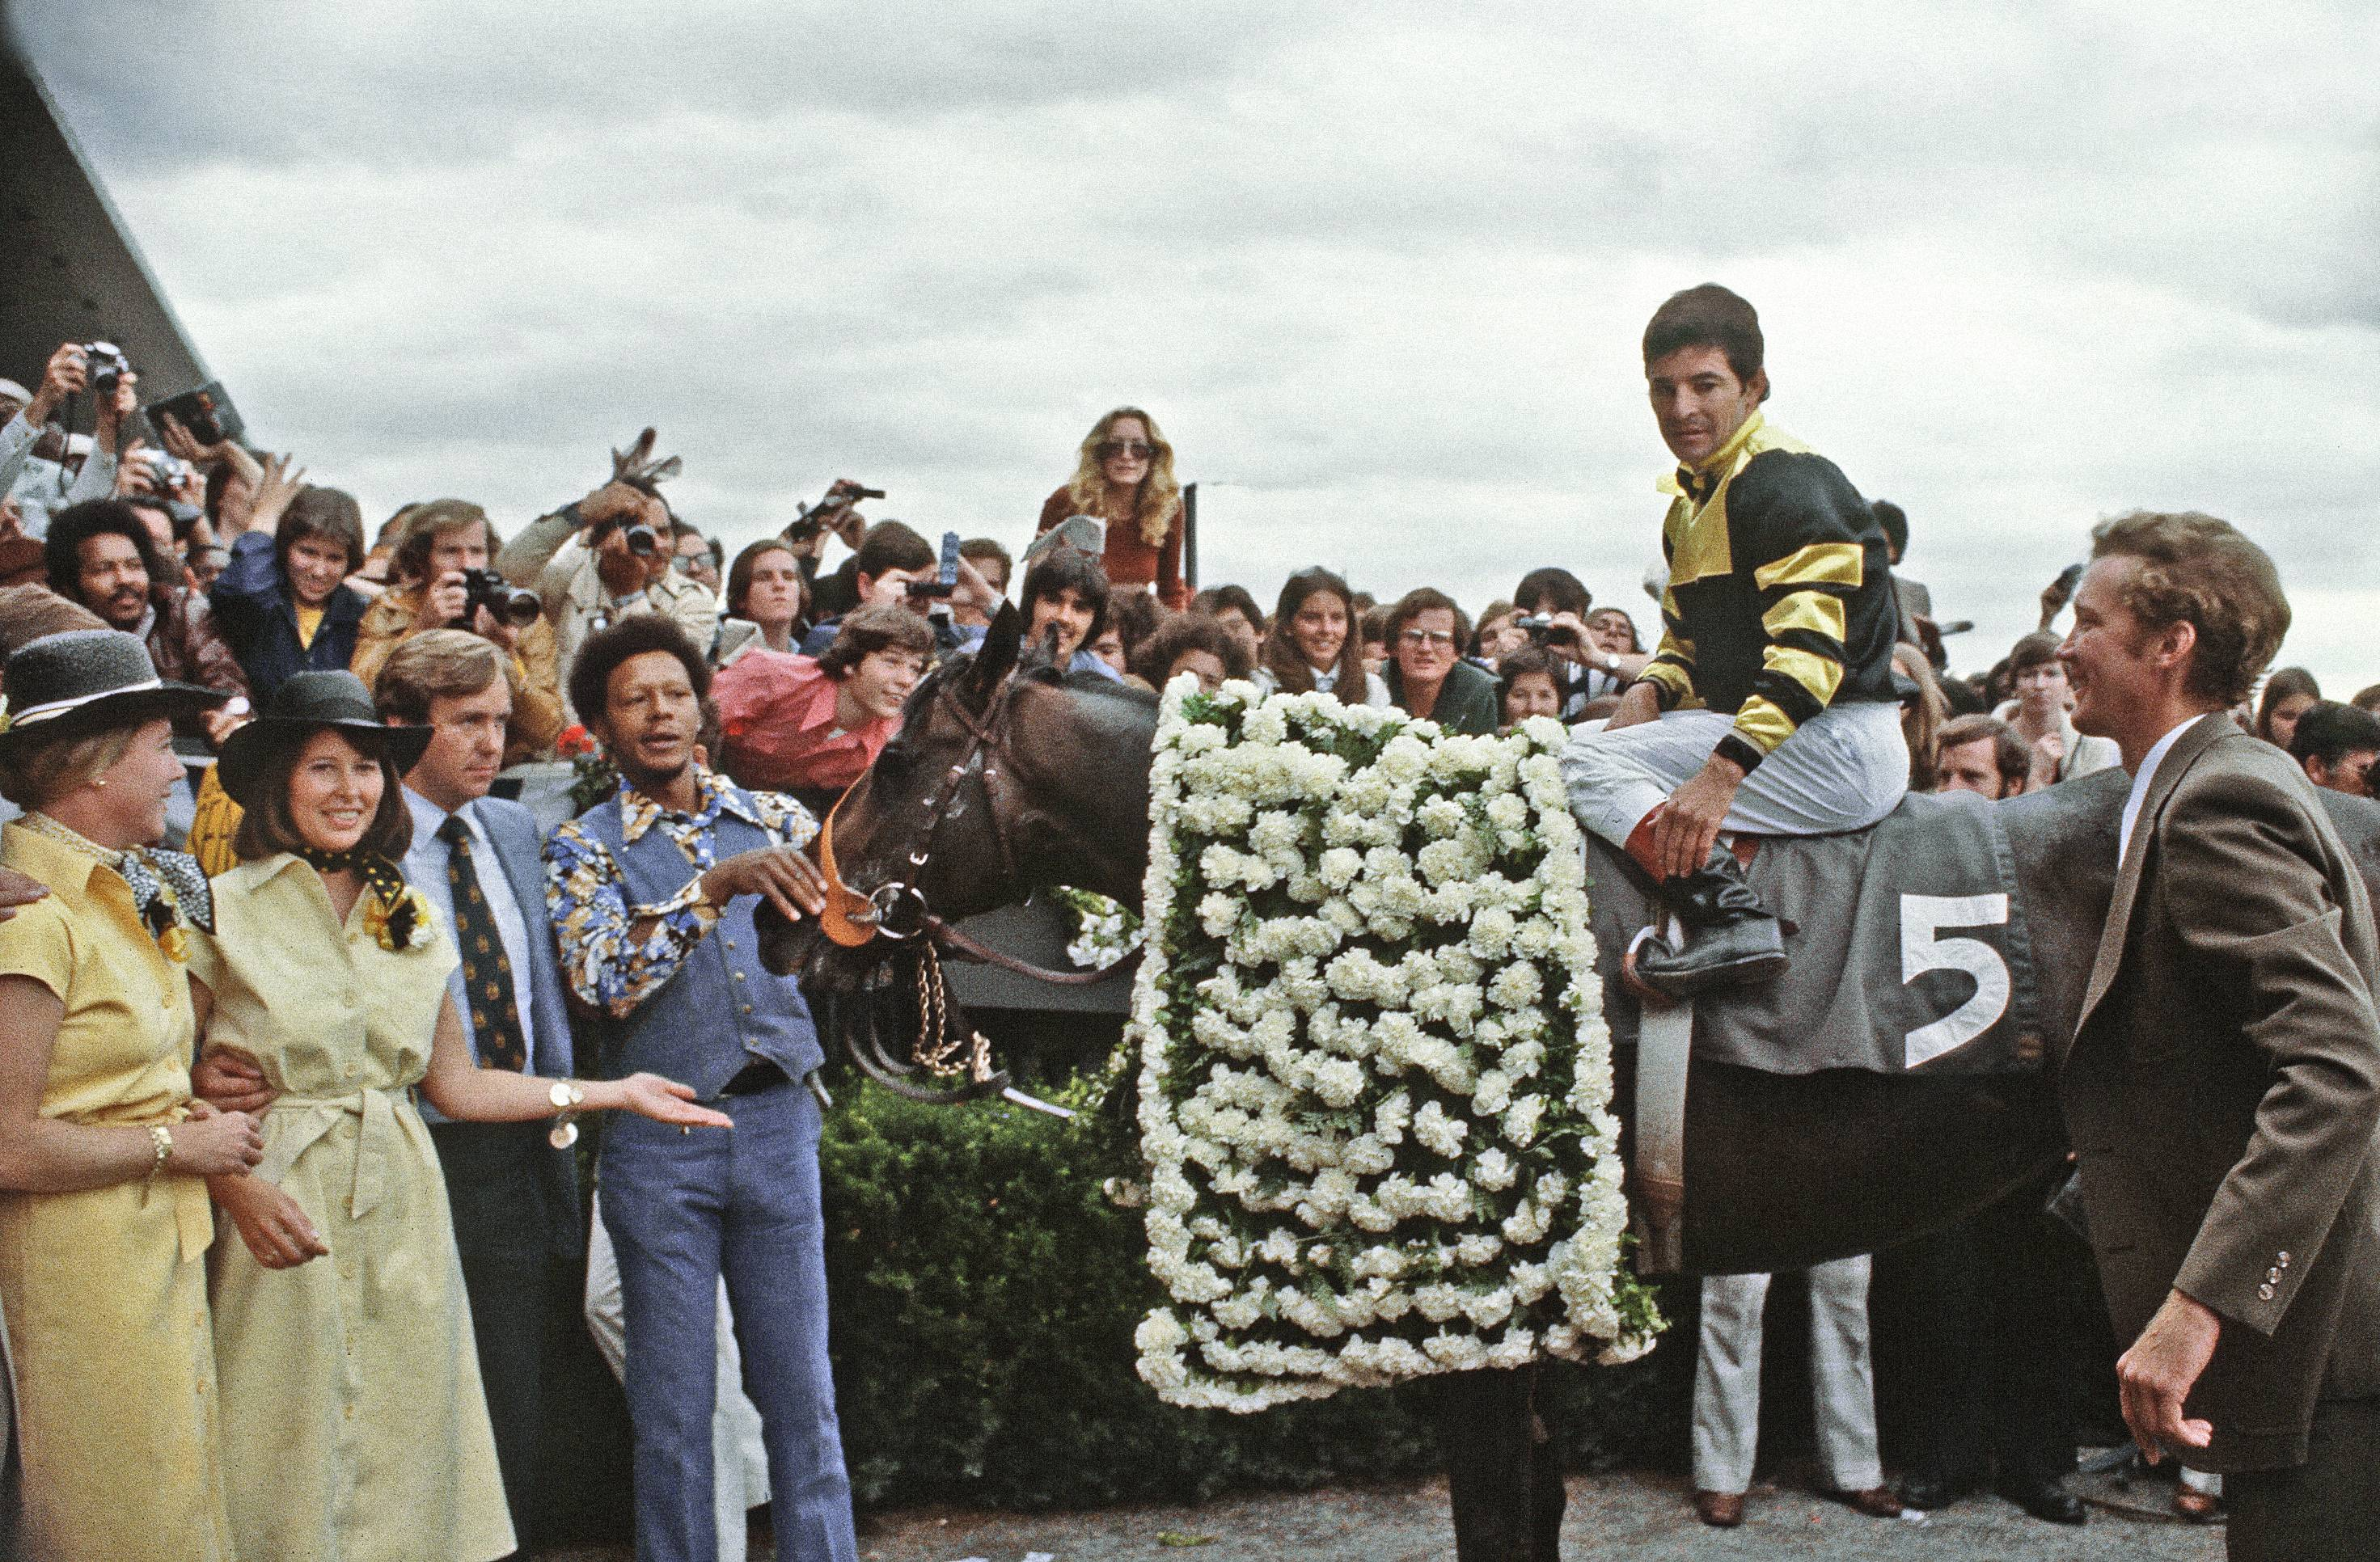 In this June 1, 1977 file photo, jockey Jean Cruguet sits on Seattle Slew in the winners circle after winning  Belmont Stakes in Elmont, N.Y.  Standing second from left is Karen Taylor, owner of Seattle Slew. Third from left is her husband, Mickey. California Chrome will try to win the Triple Crown at the Belmont Stakes on June 7.